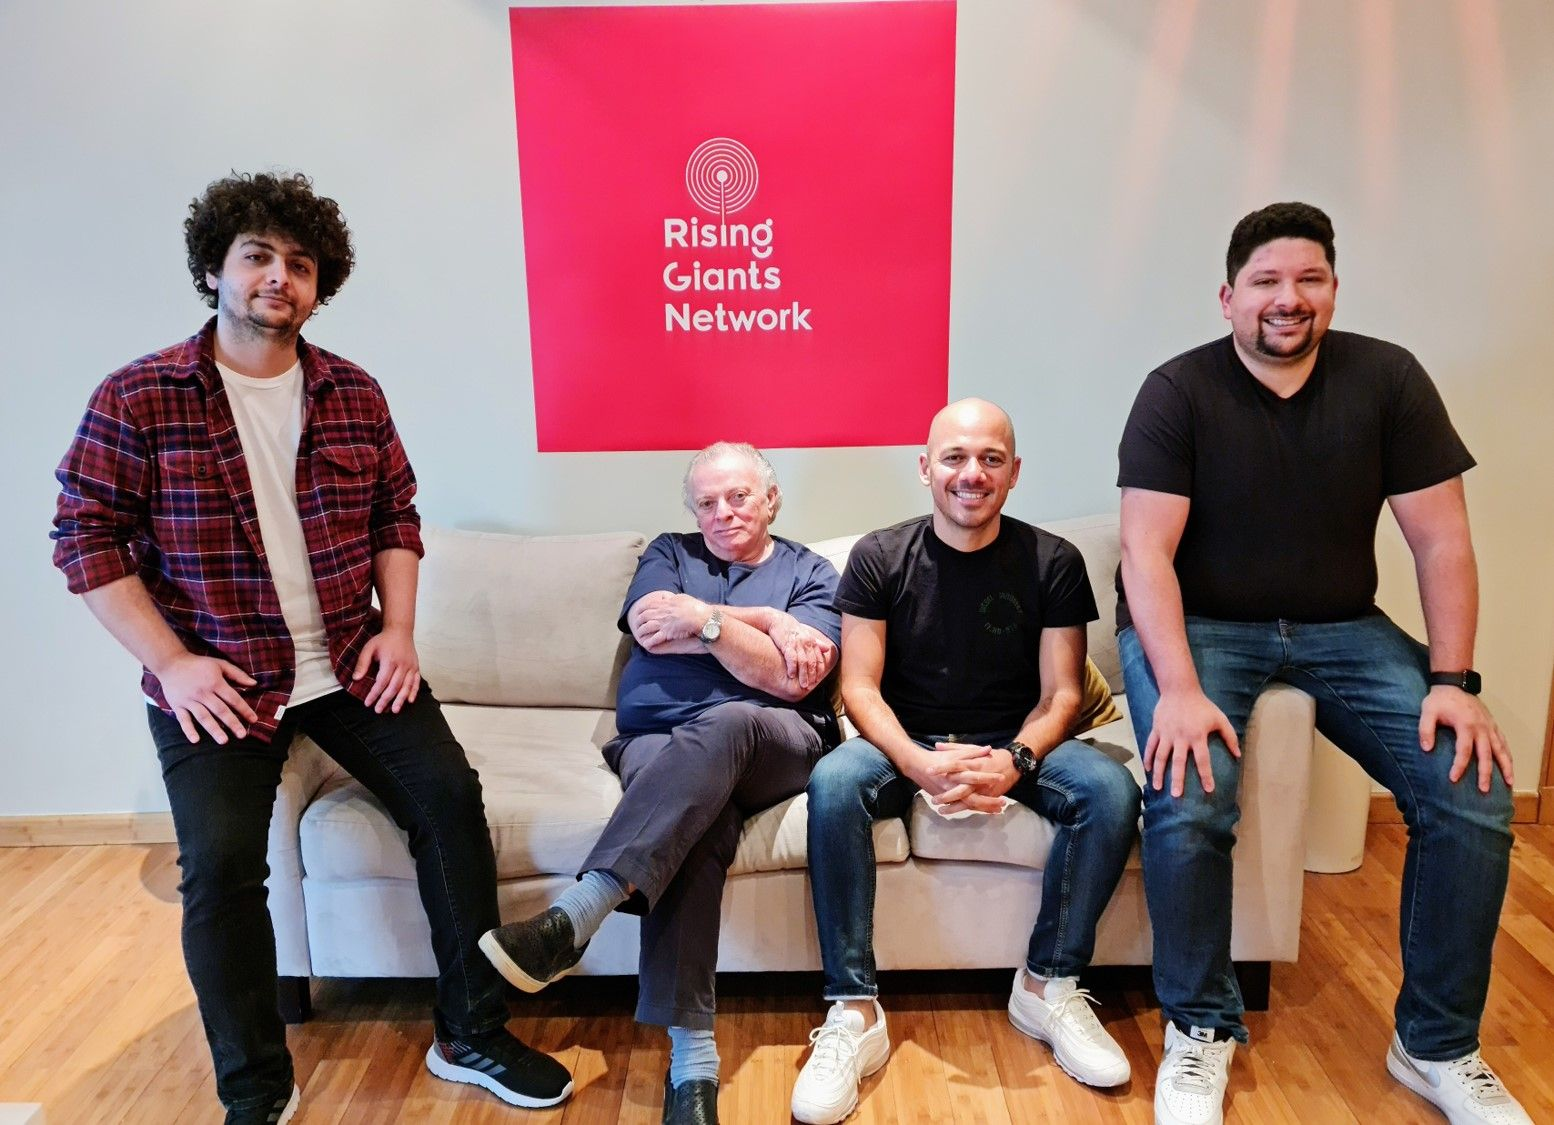 Rising Giants Network secures $1 million investment